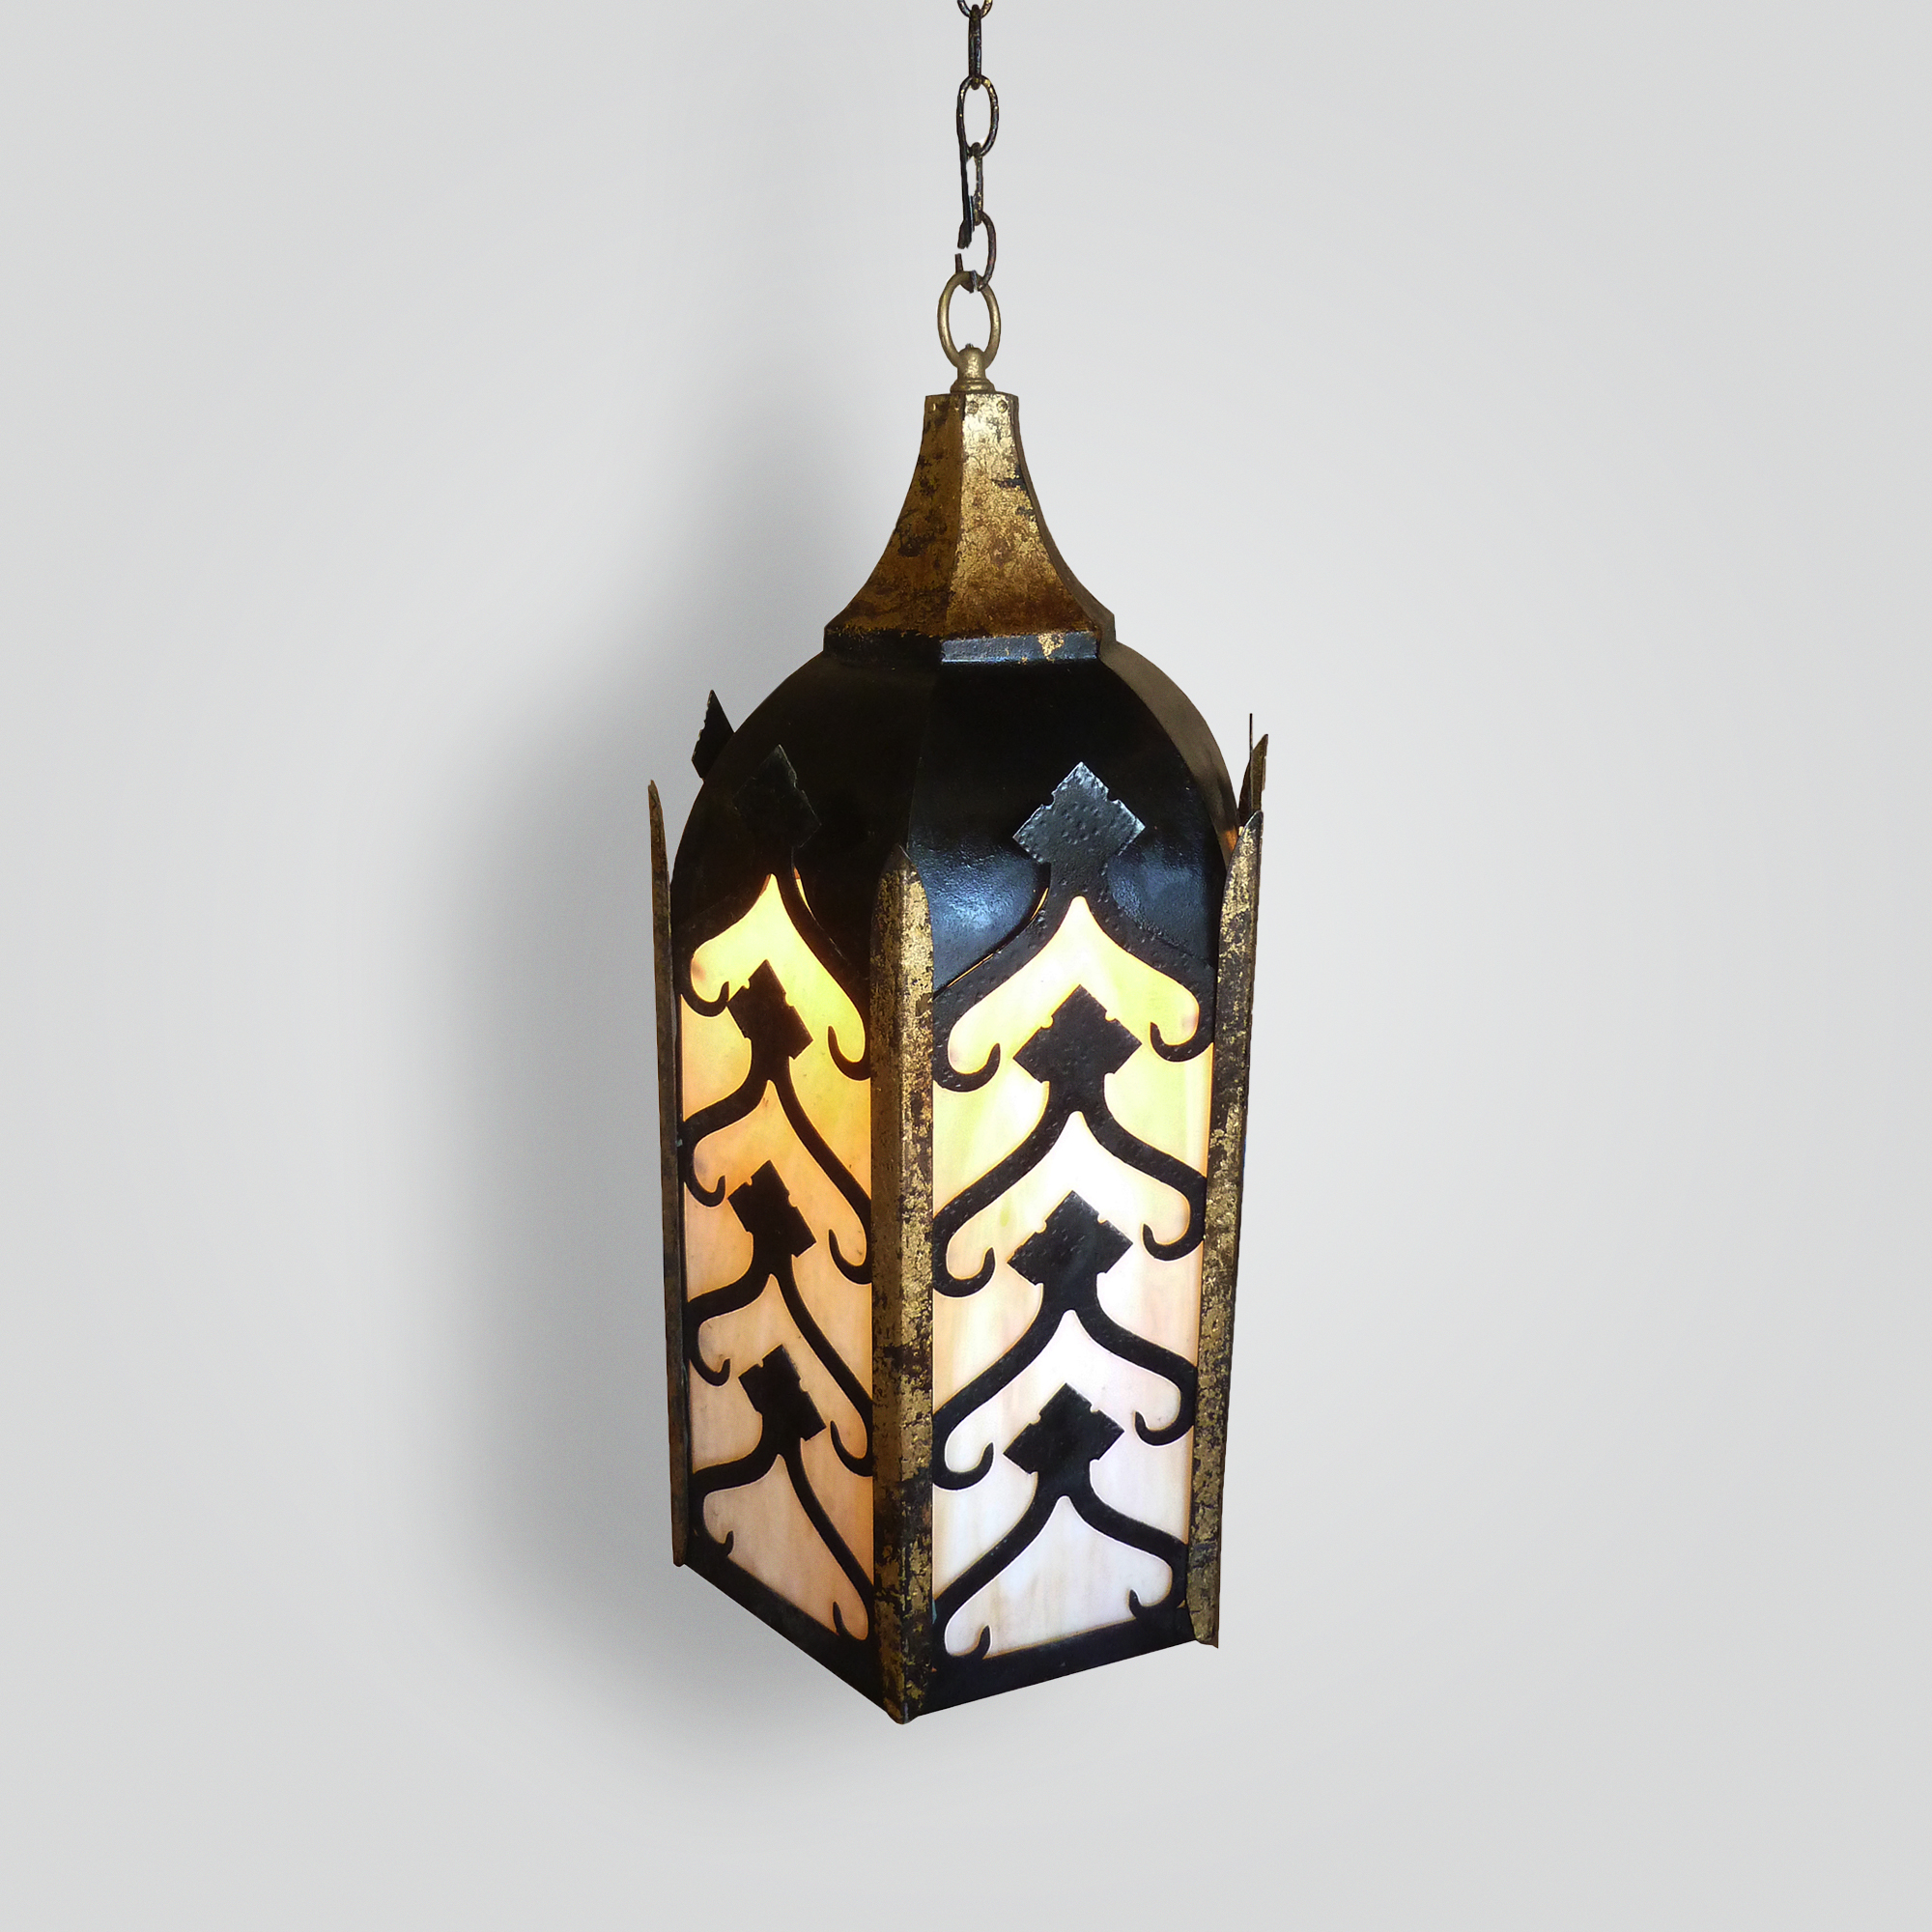 1731-mb1-st-h-sh-morrocan-pendant – ADG Lighting Collection